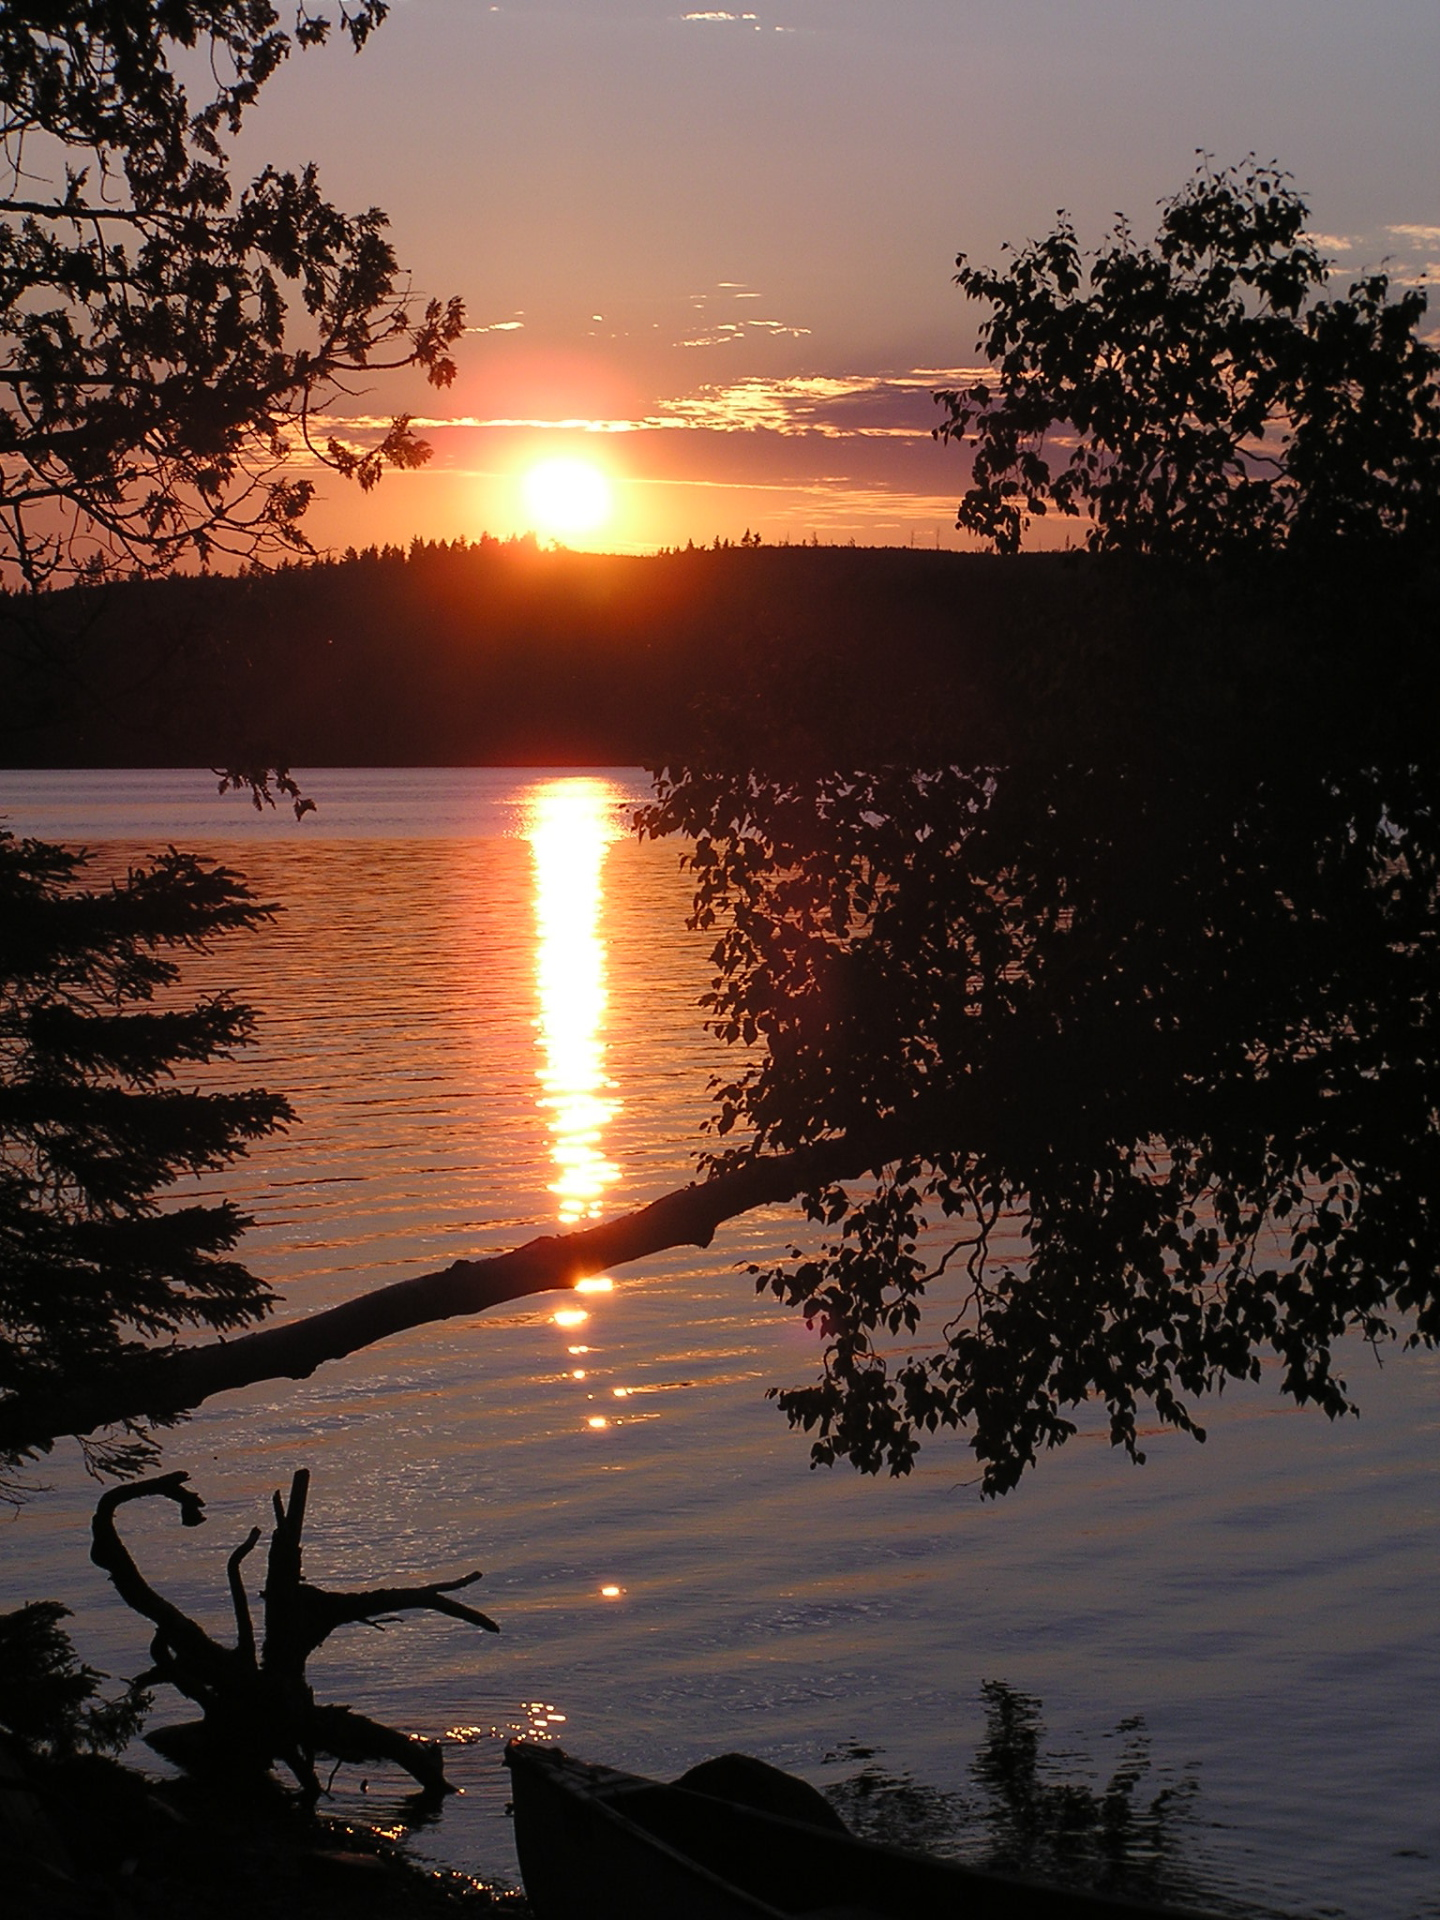 I couldn't resist including this shot from a canoe trip that summer. Grand Marais, MN, BWCAW: chapter 38, You must only to love them. http://mershon.wordpress.com